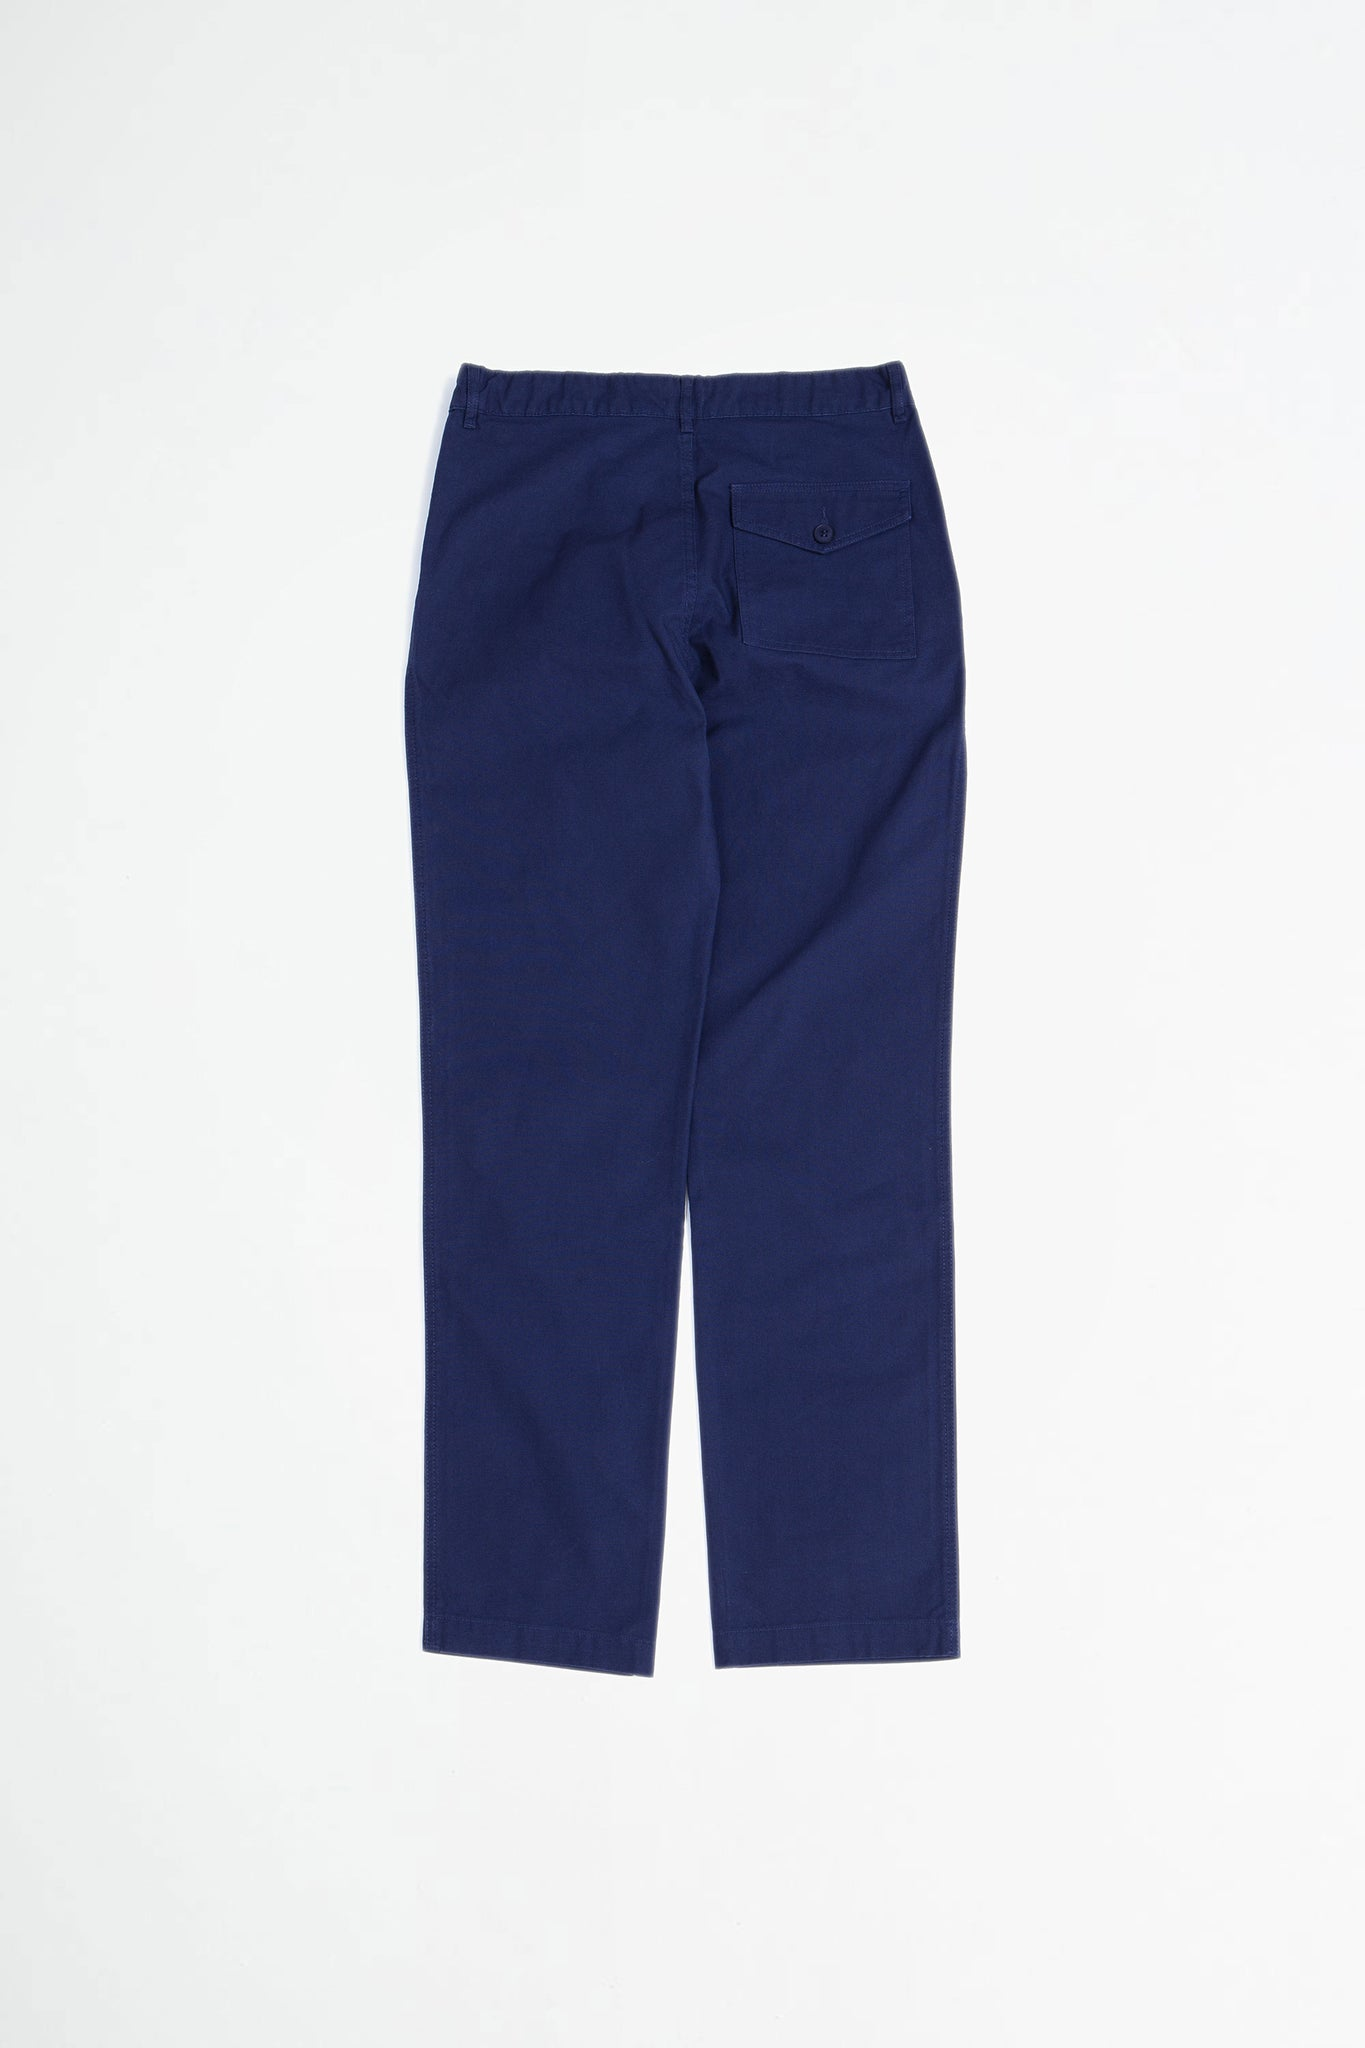 Gabare trousers heritage navire navy blue